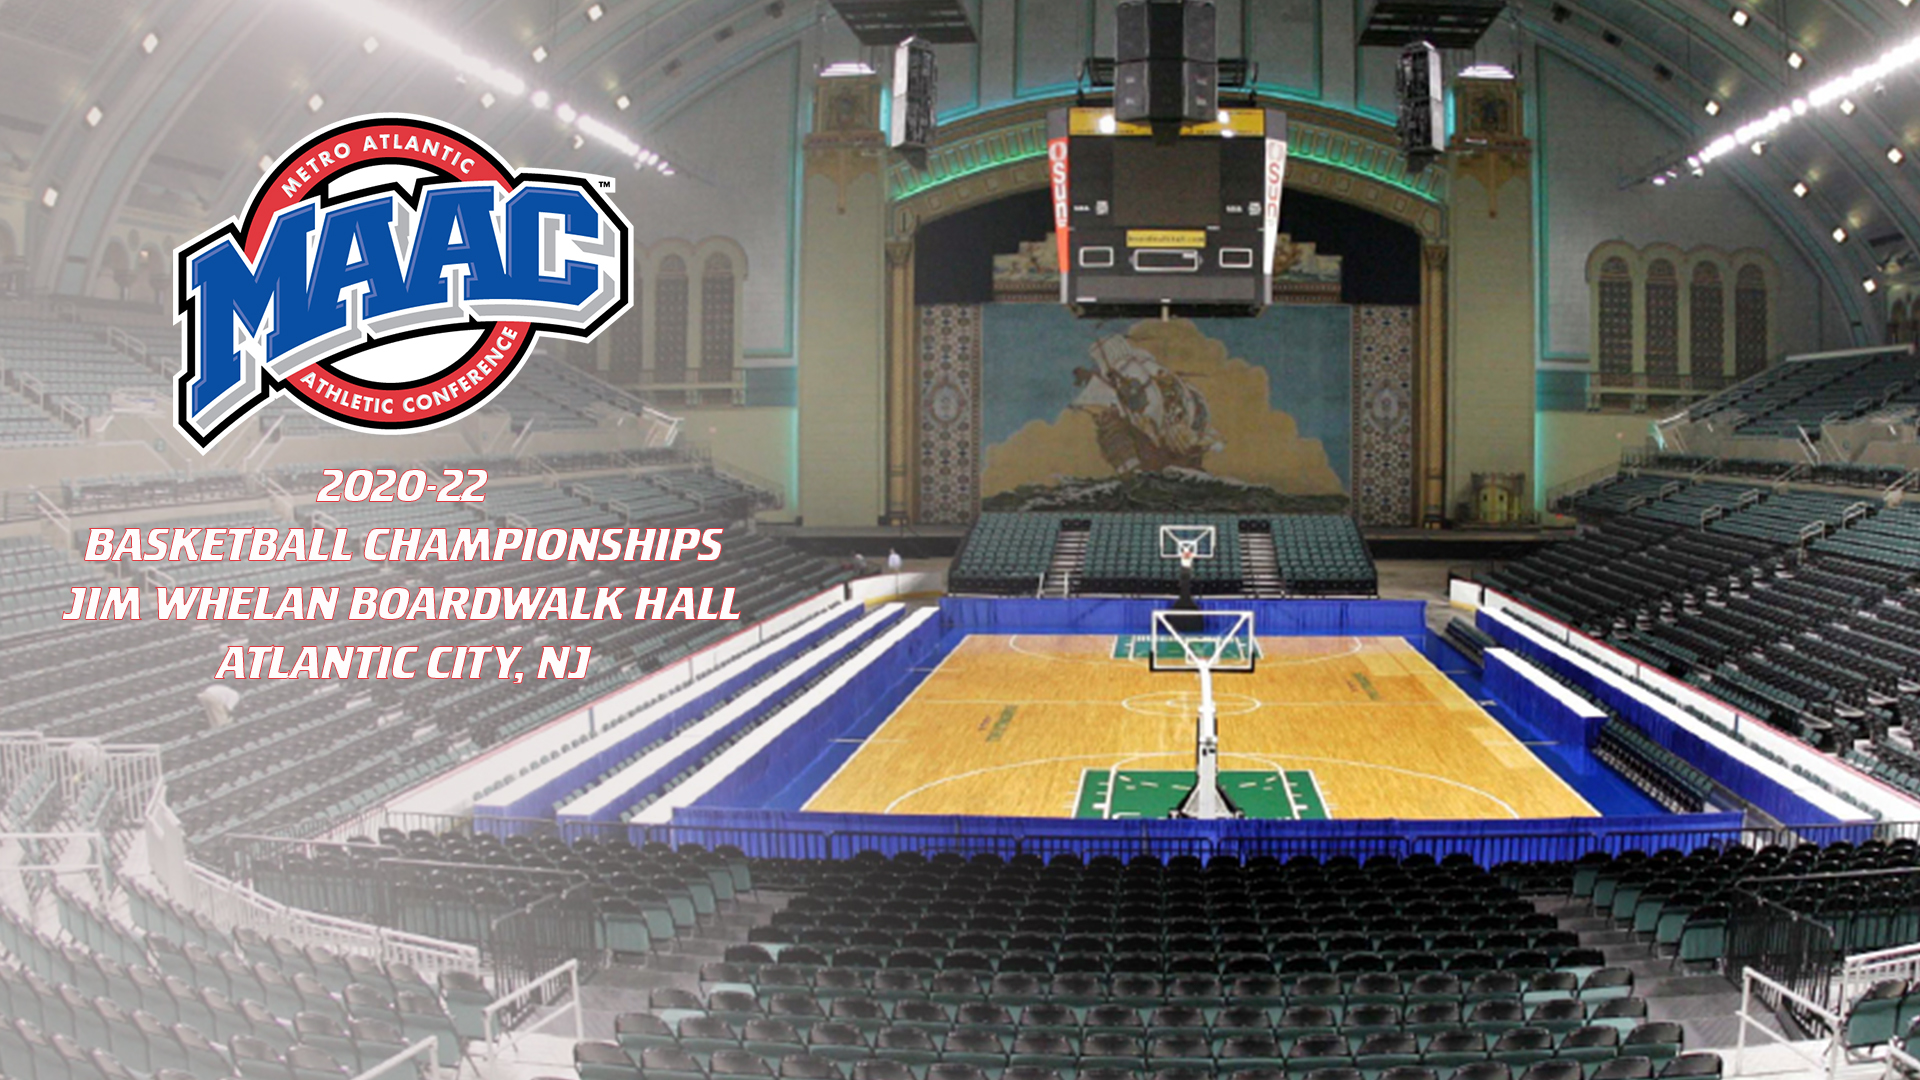 Atlantic City Selected To Host 2020 22 Maac Basketball Championships